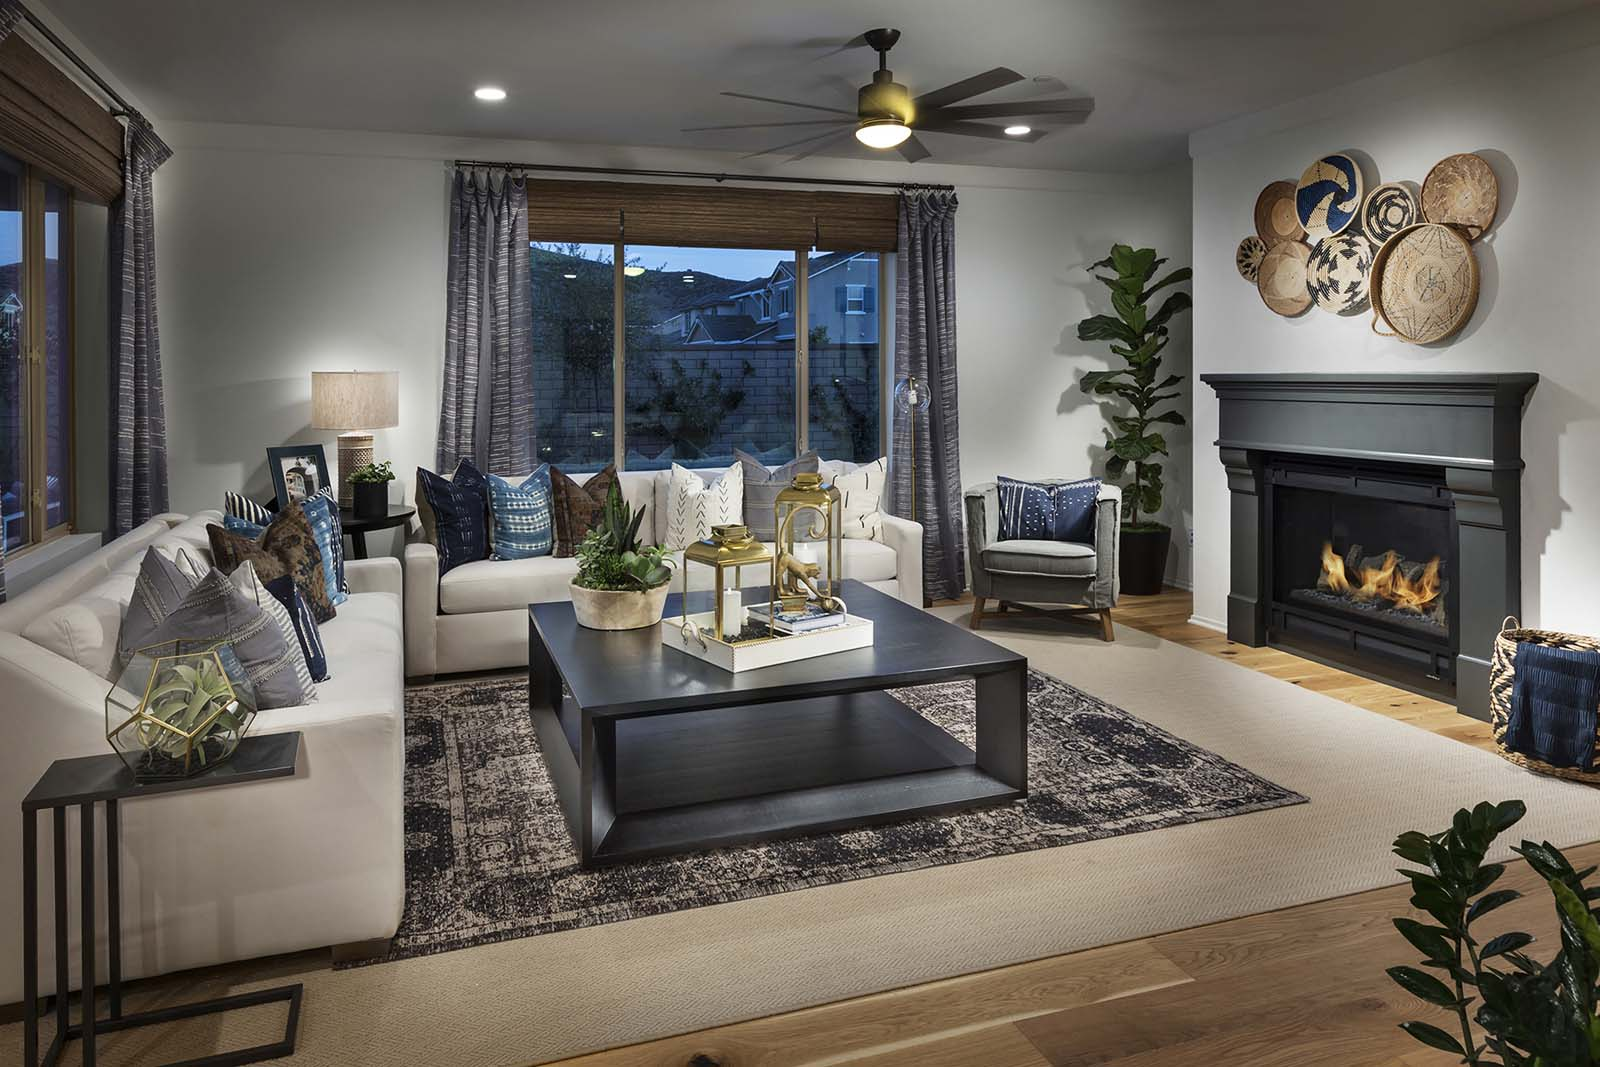 Plan 2 living room | Savannah at Audie Murphy Ranch in Menifee, CA | Brookfield Residential